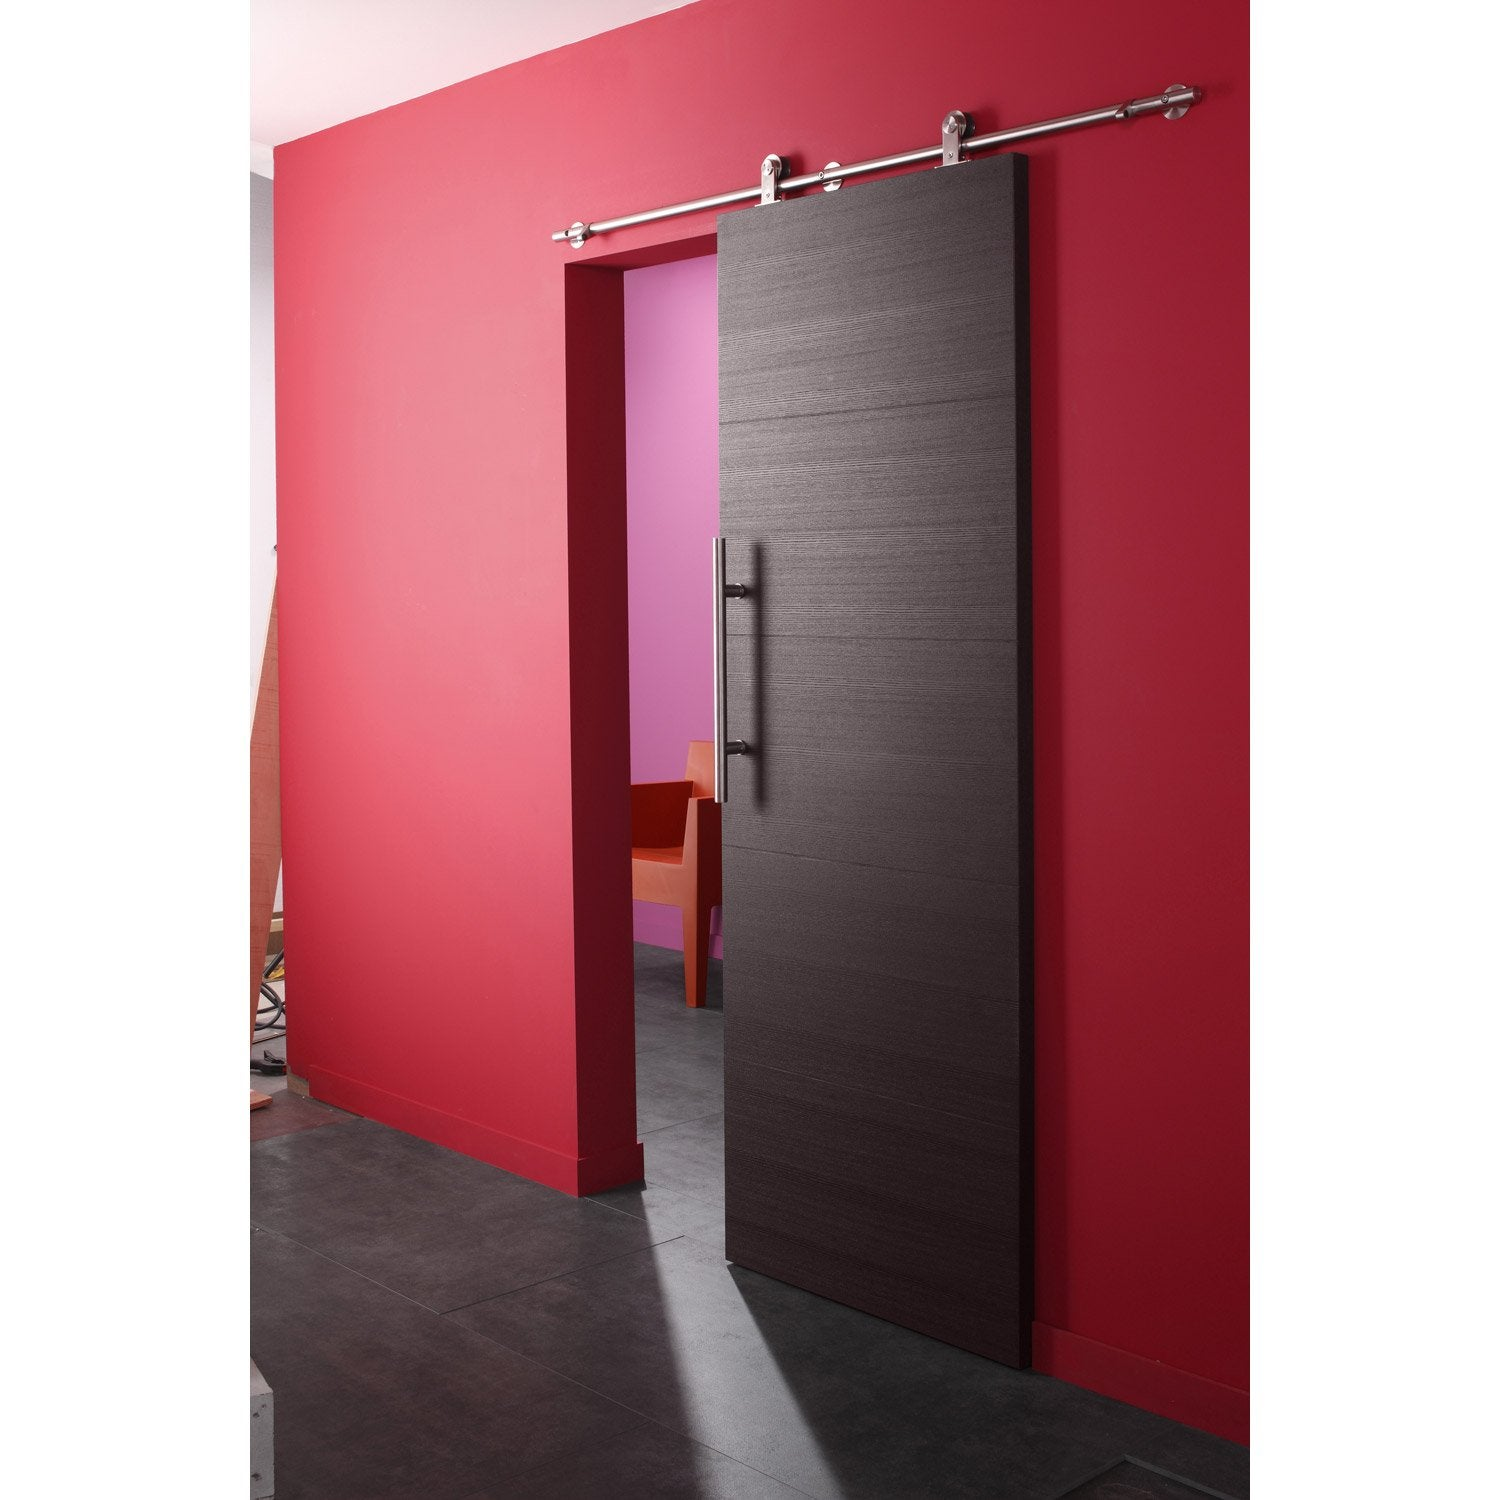 ensemble porte coulissante tokyo fr ne avec le rail techno bois leroy merlin. Black Bedroom Furniture Sets. Home Design Ideas